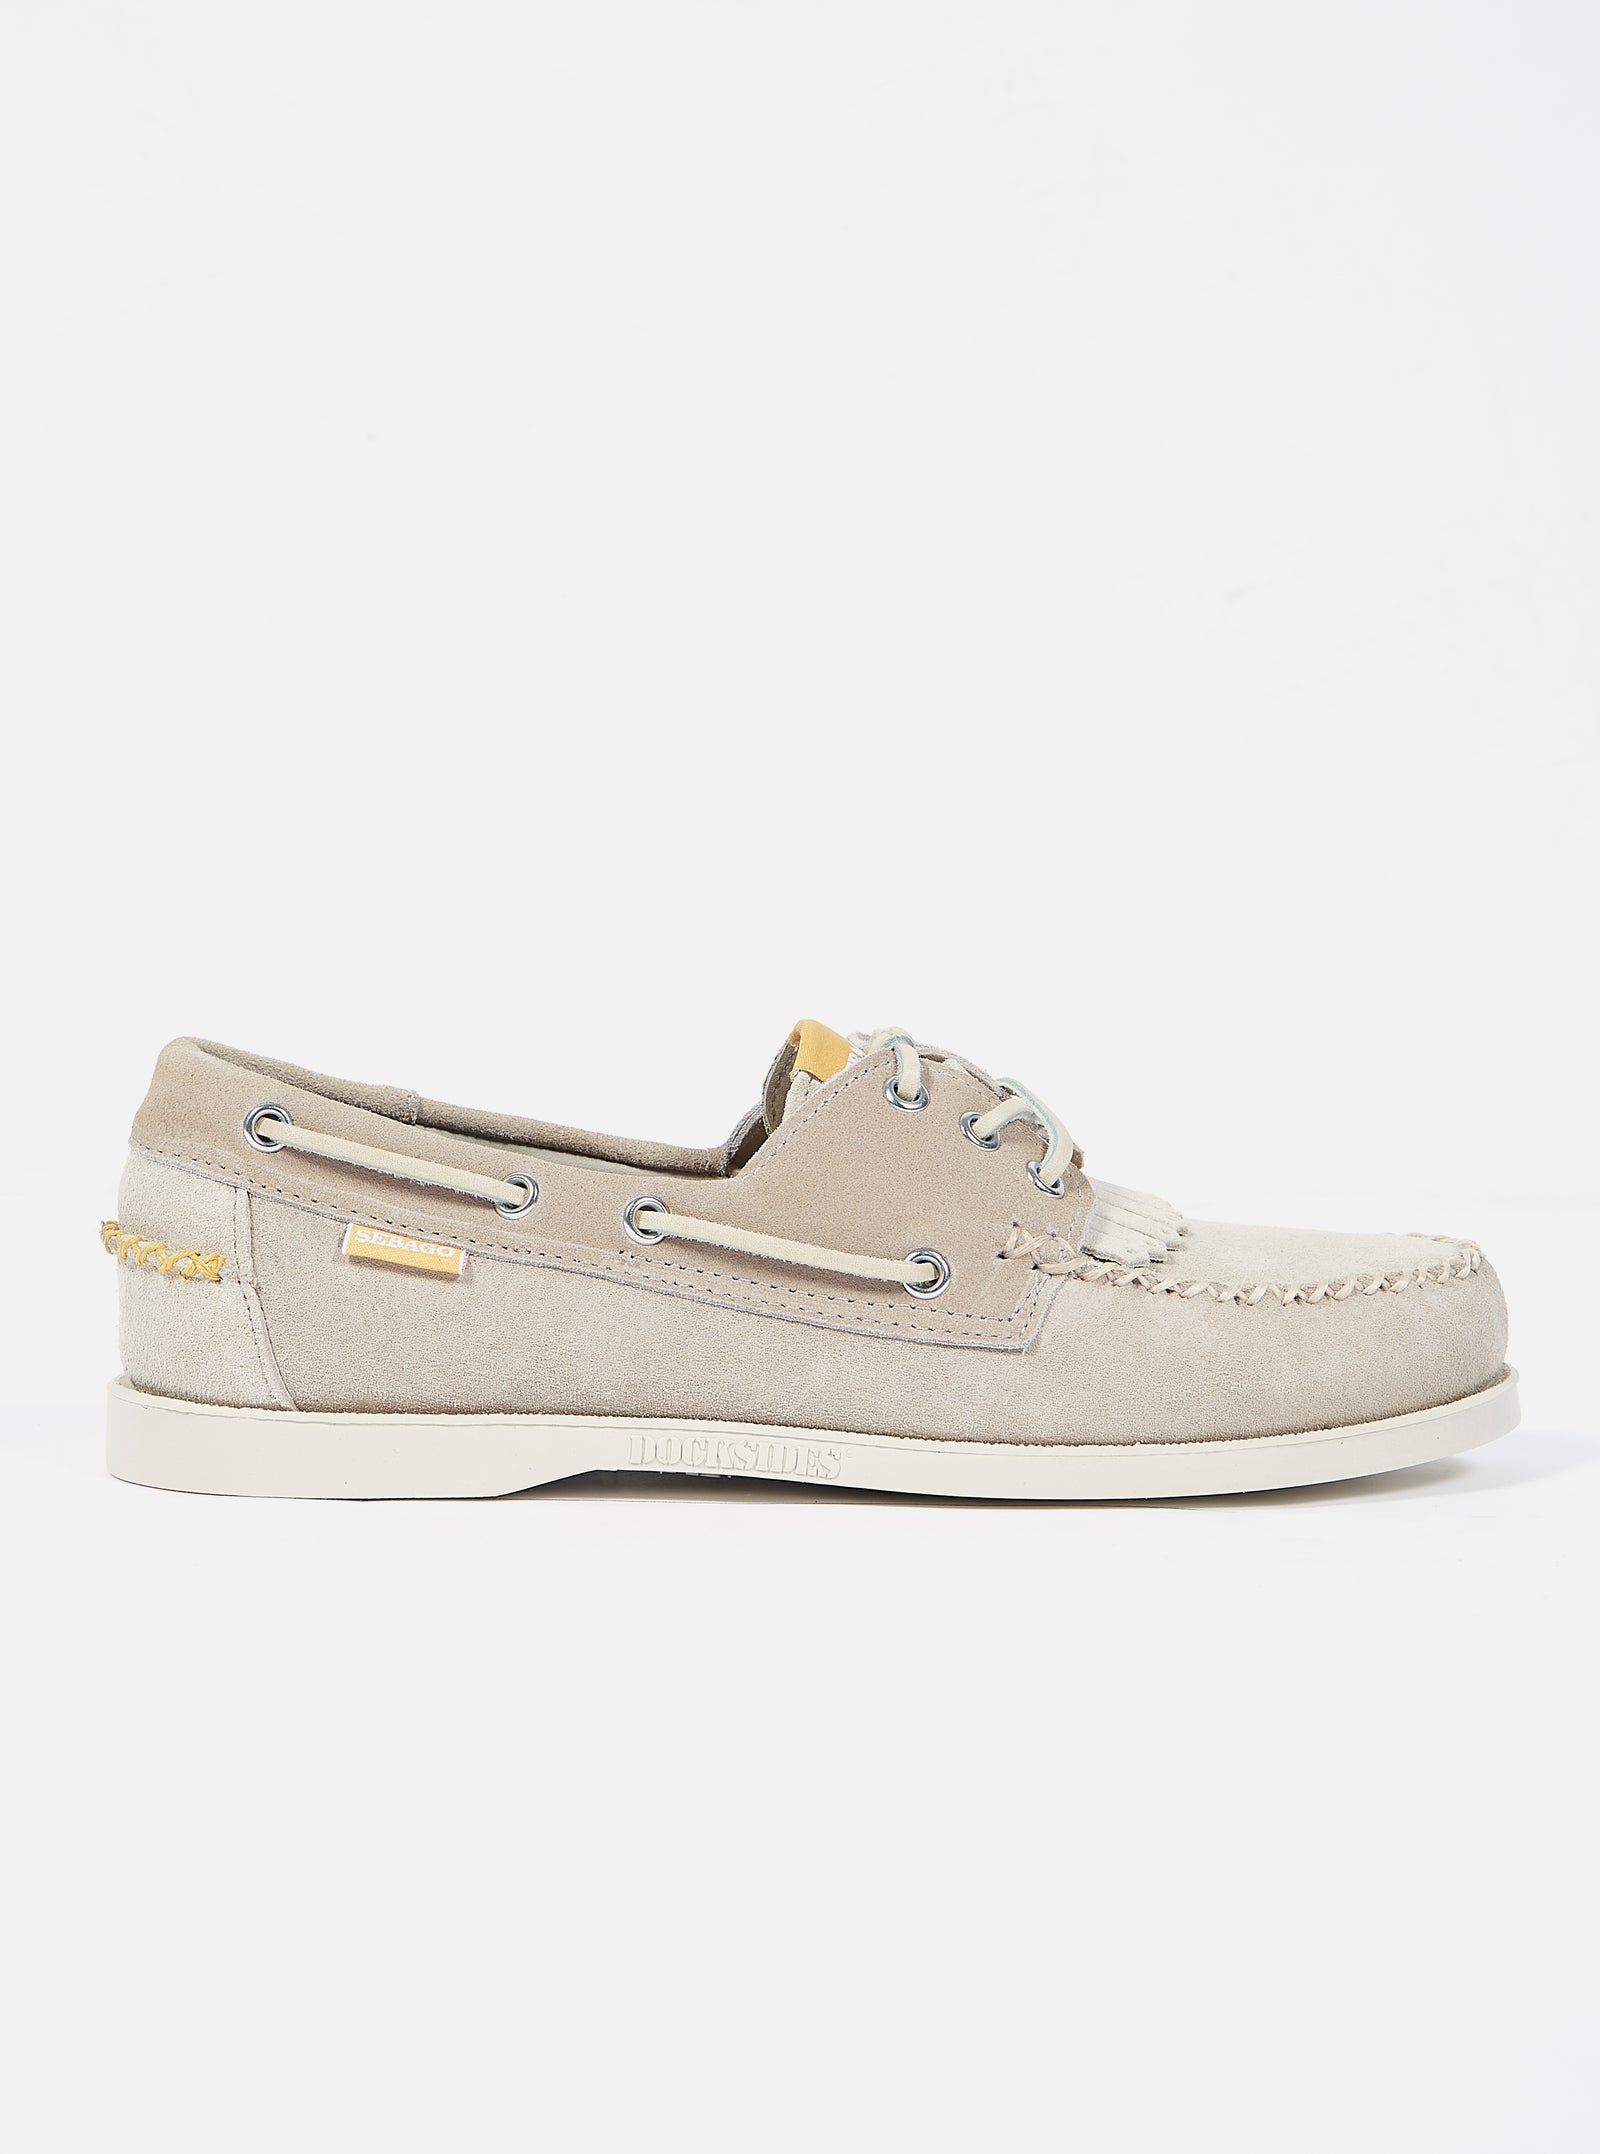 Universal Works x Sebago Portland Multi-Tone in Cream Suede